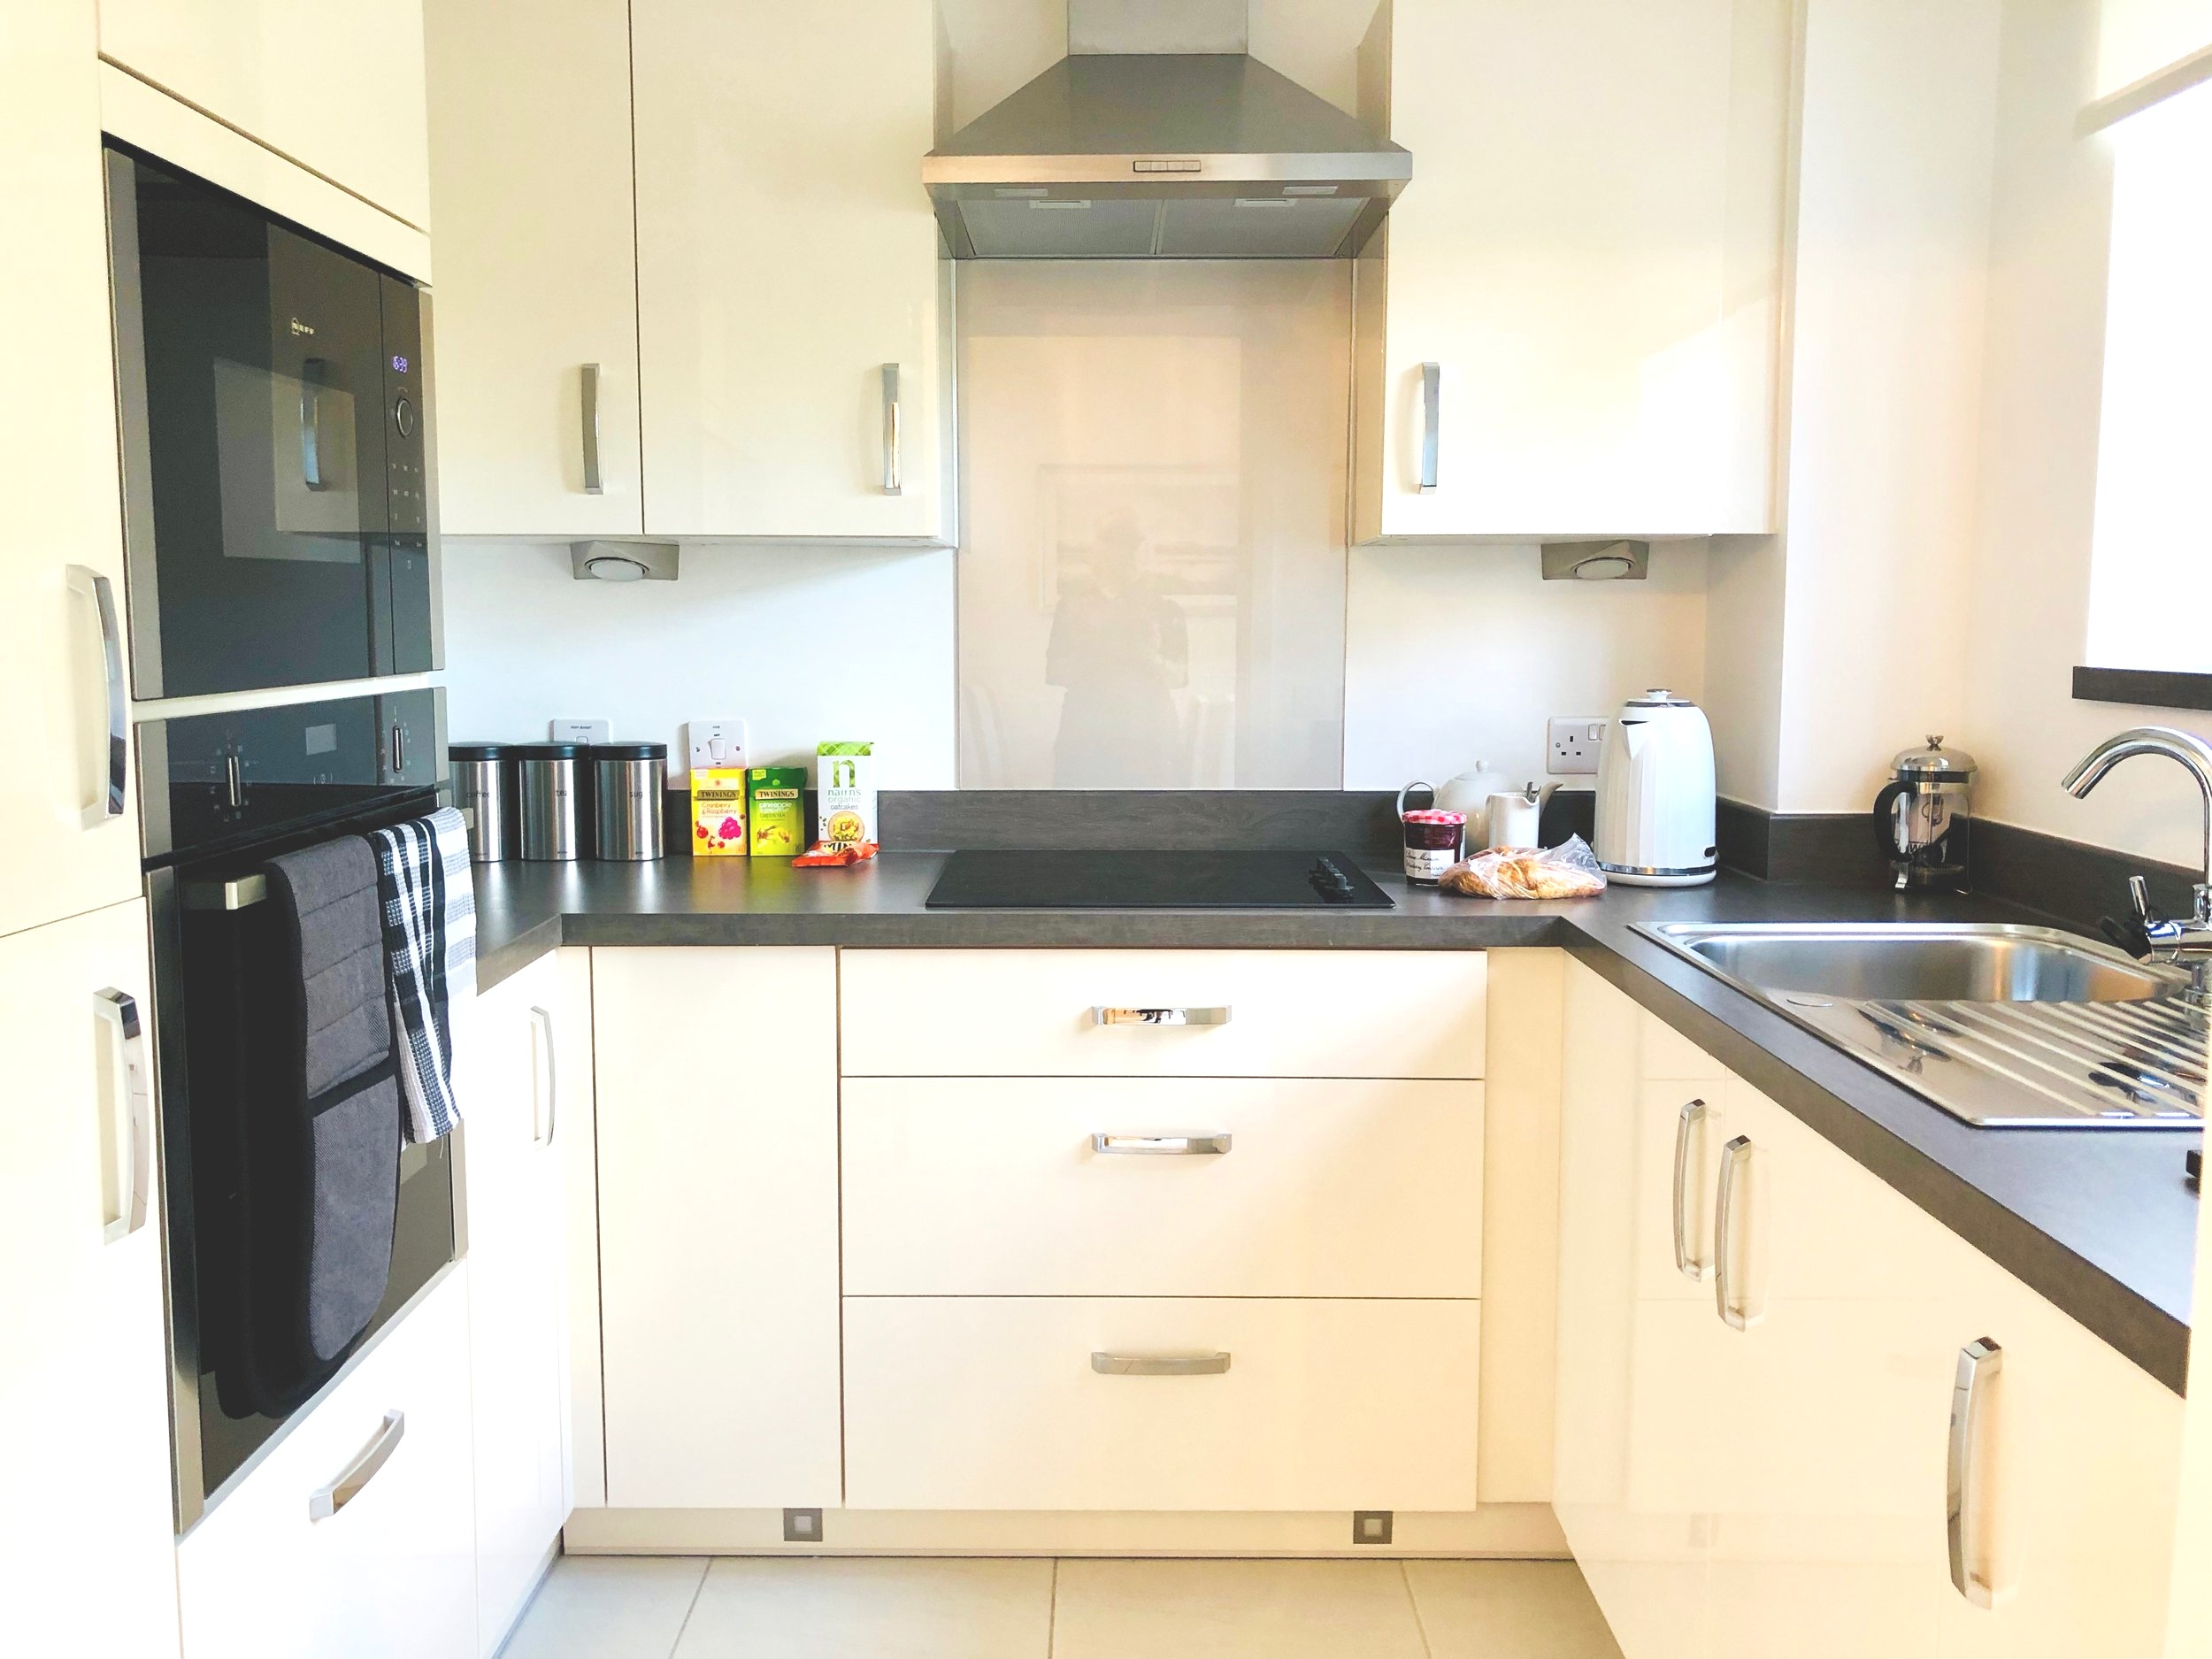 Well-planned kitchen in a 2-bed apartment.